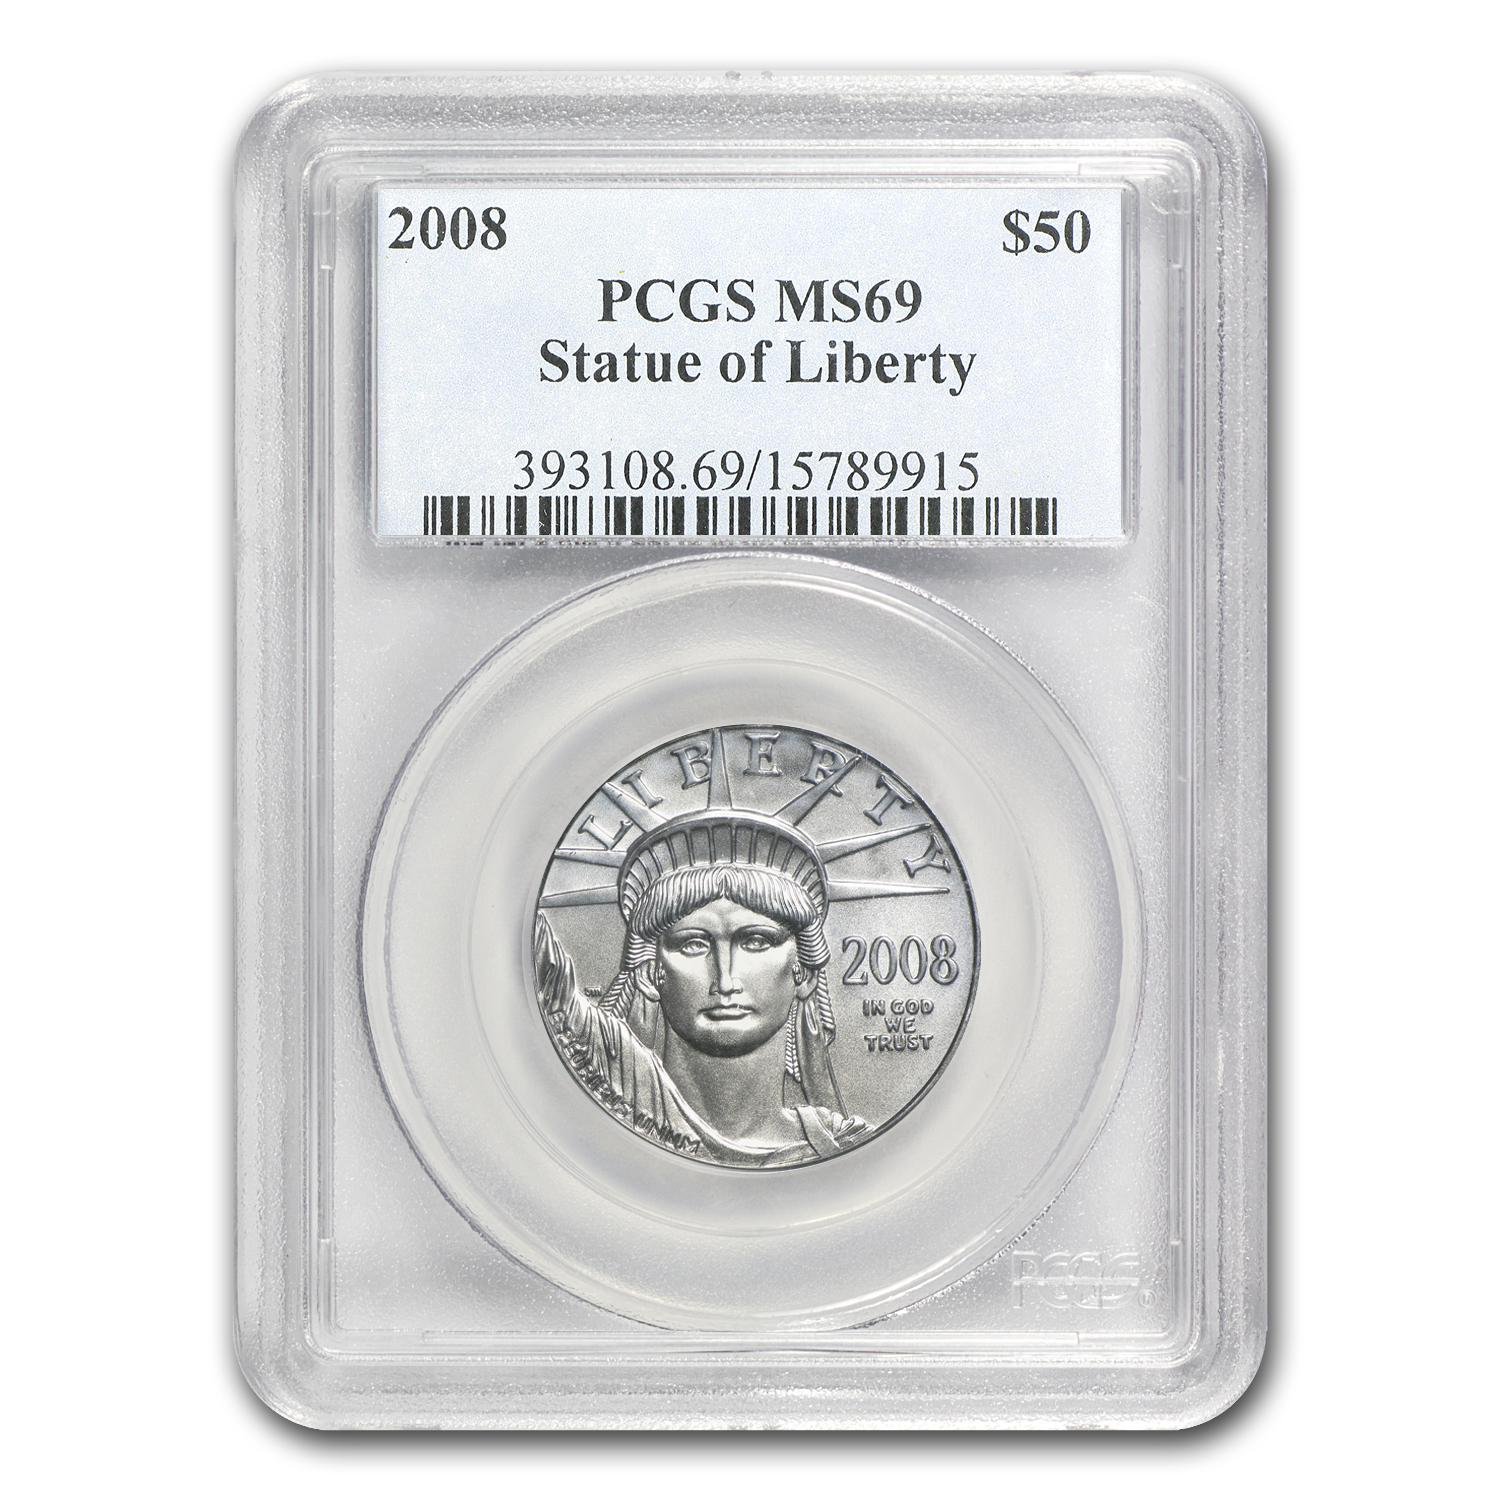 2008 1/2 oz Platinum American Eagle MS-69 PCGS